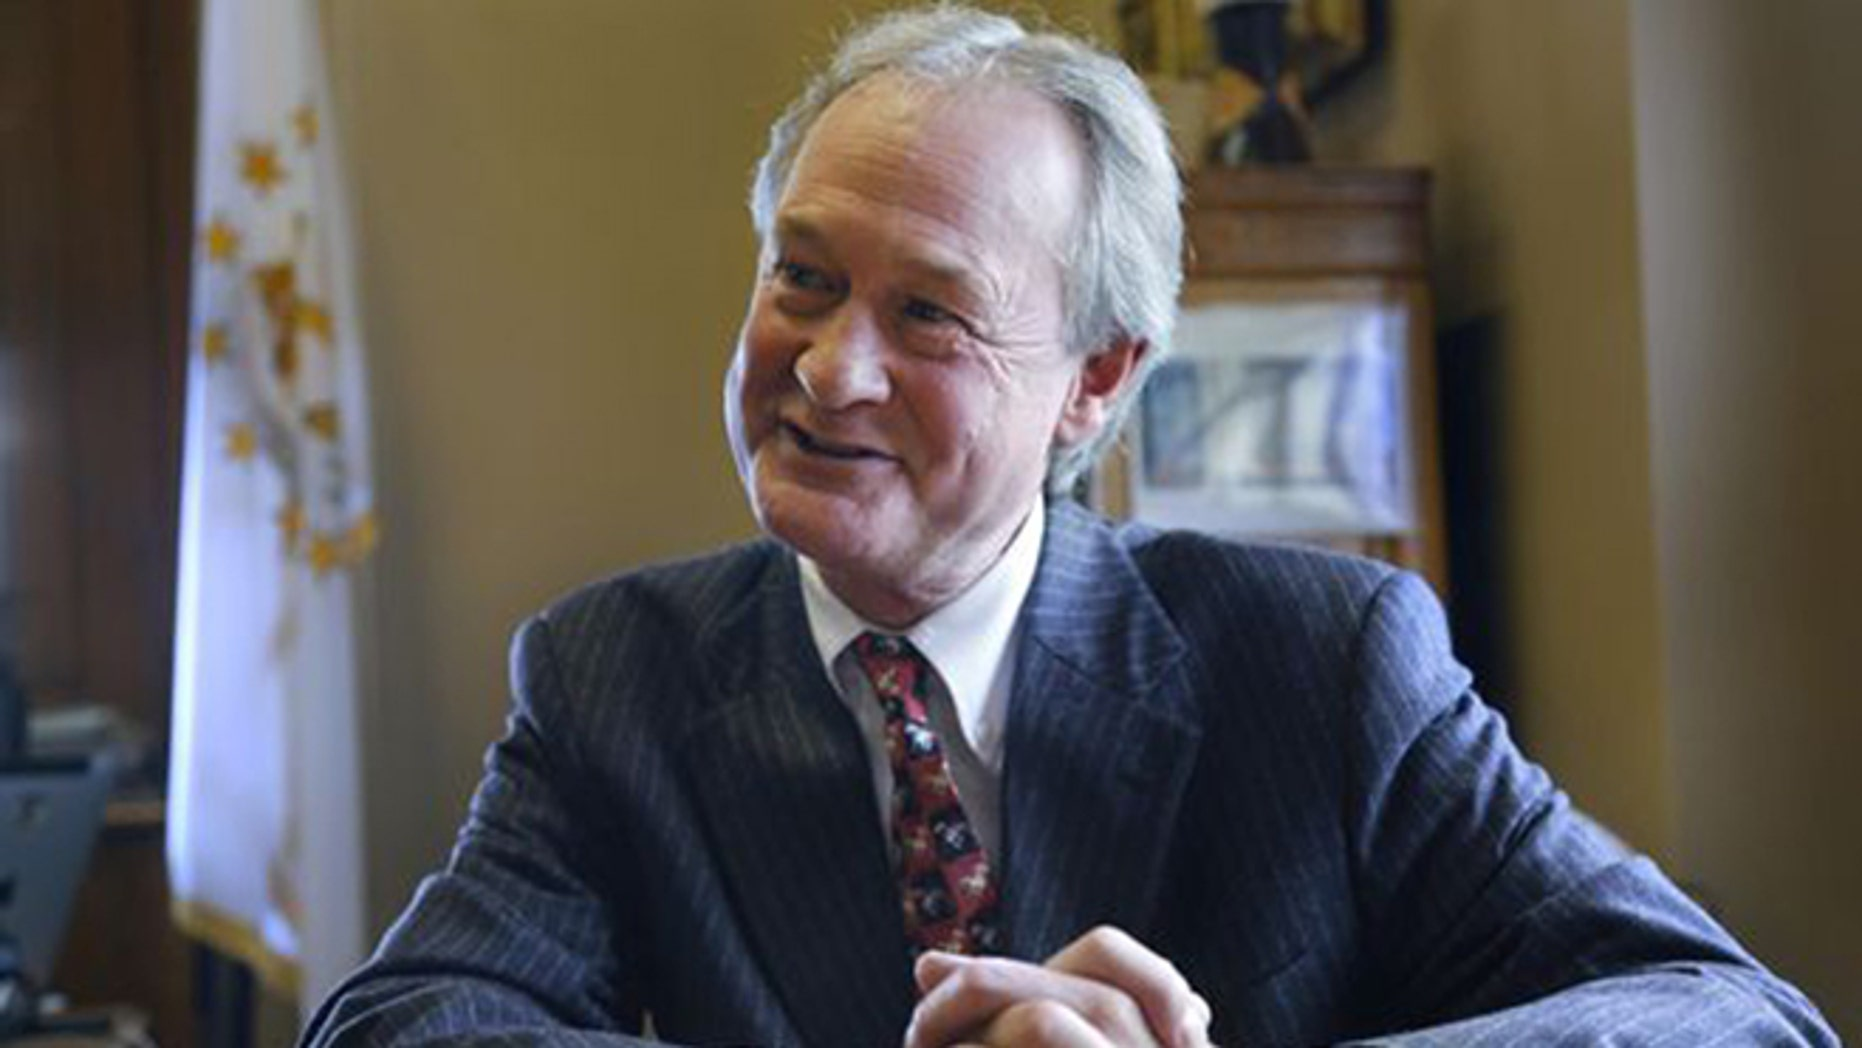 In this file photo, then-Rhode Island Gov. Lincoln Chafee responds to questions during an interview with The Associated Press, in his office at the Statehouse, in Providence, R.I.